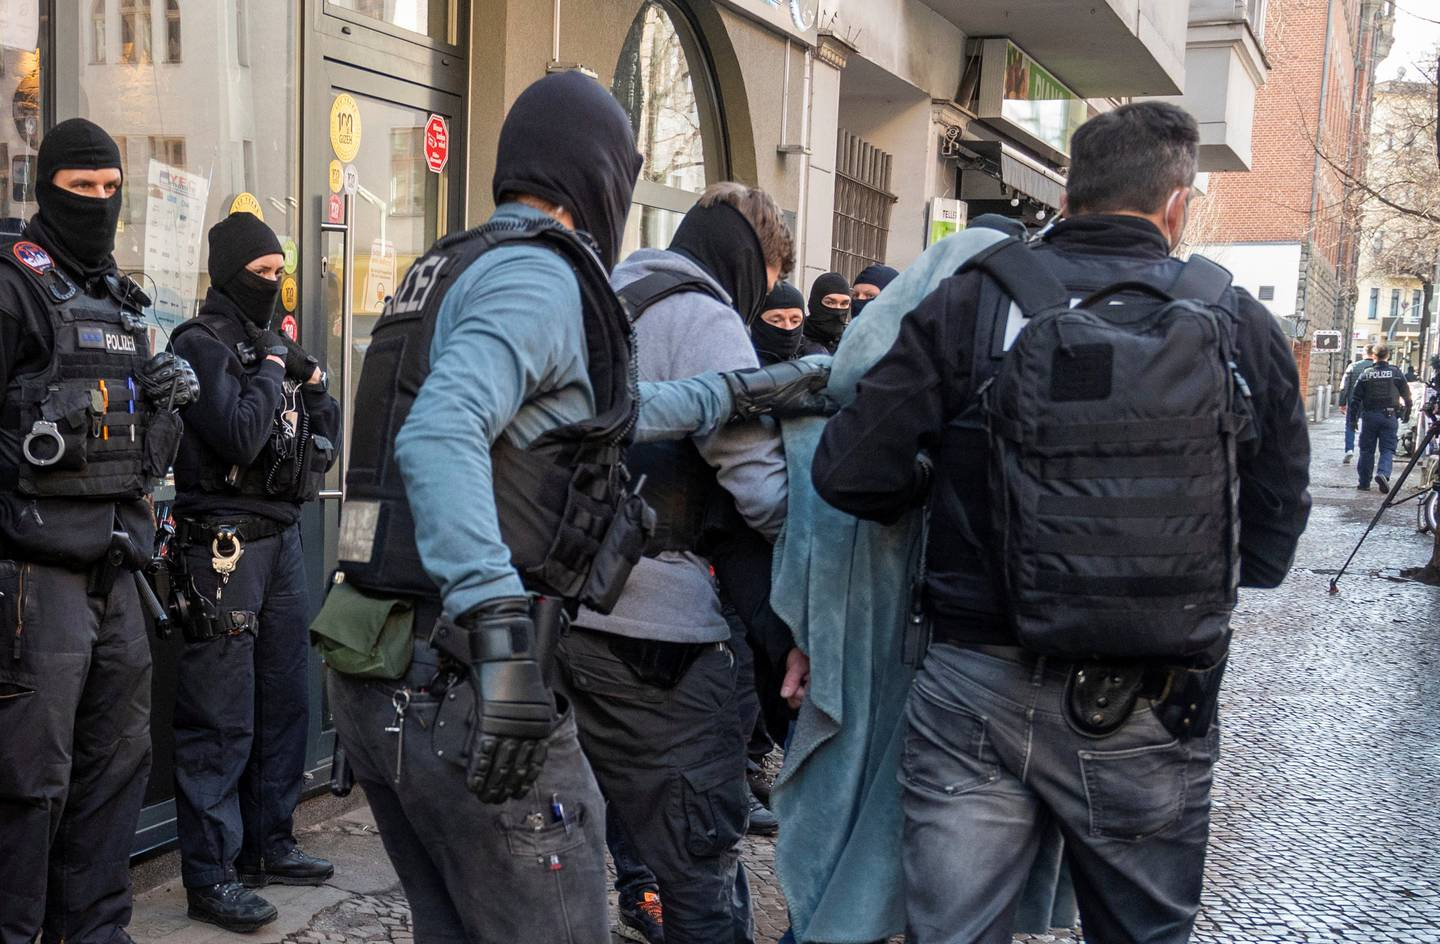 A man is led away by police with a blanket over his head during a raid in Berlin, Germany, on Thursday, February 18, 2021. The police attacked clan crimes in Berlin and the surrounding area with a major raid on Thursday morning.  (Christophe Gateau / dpa via AP)